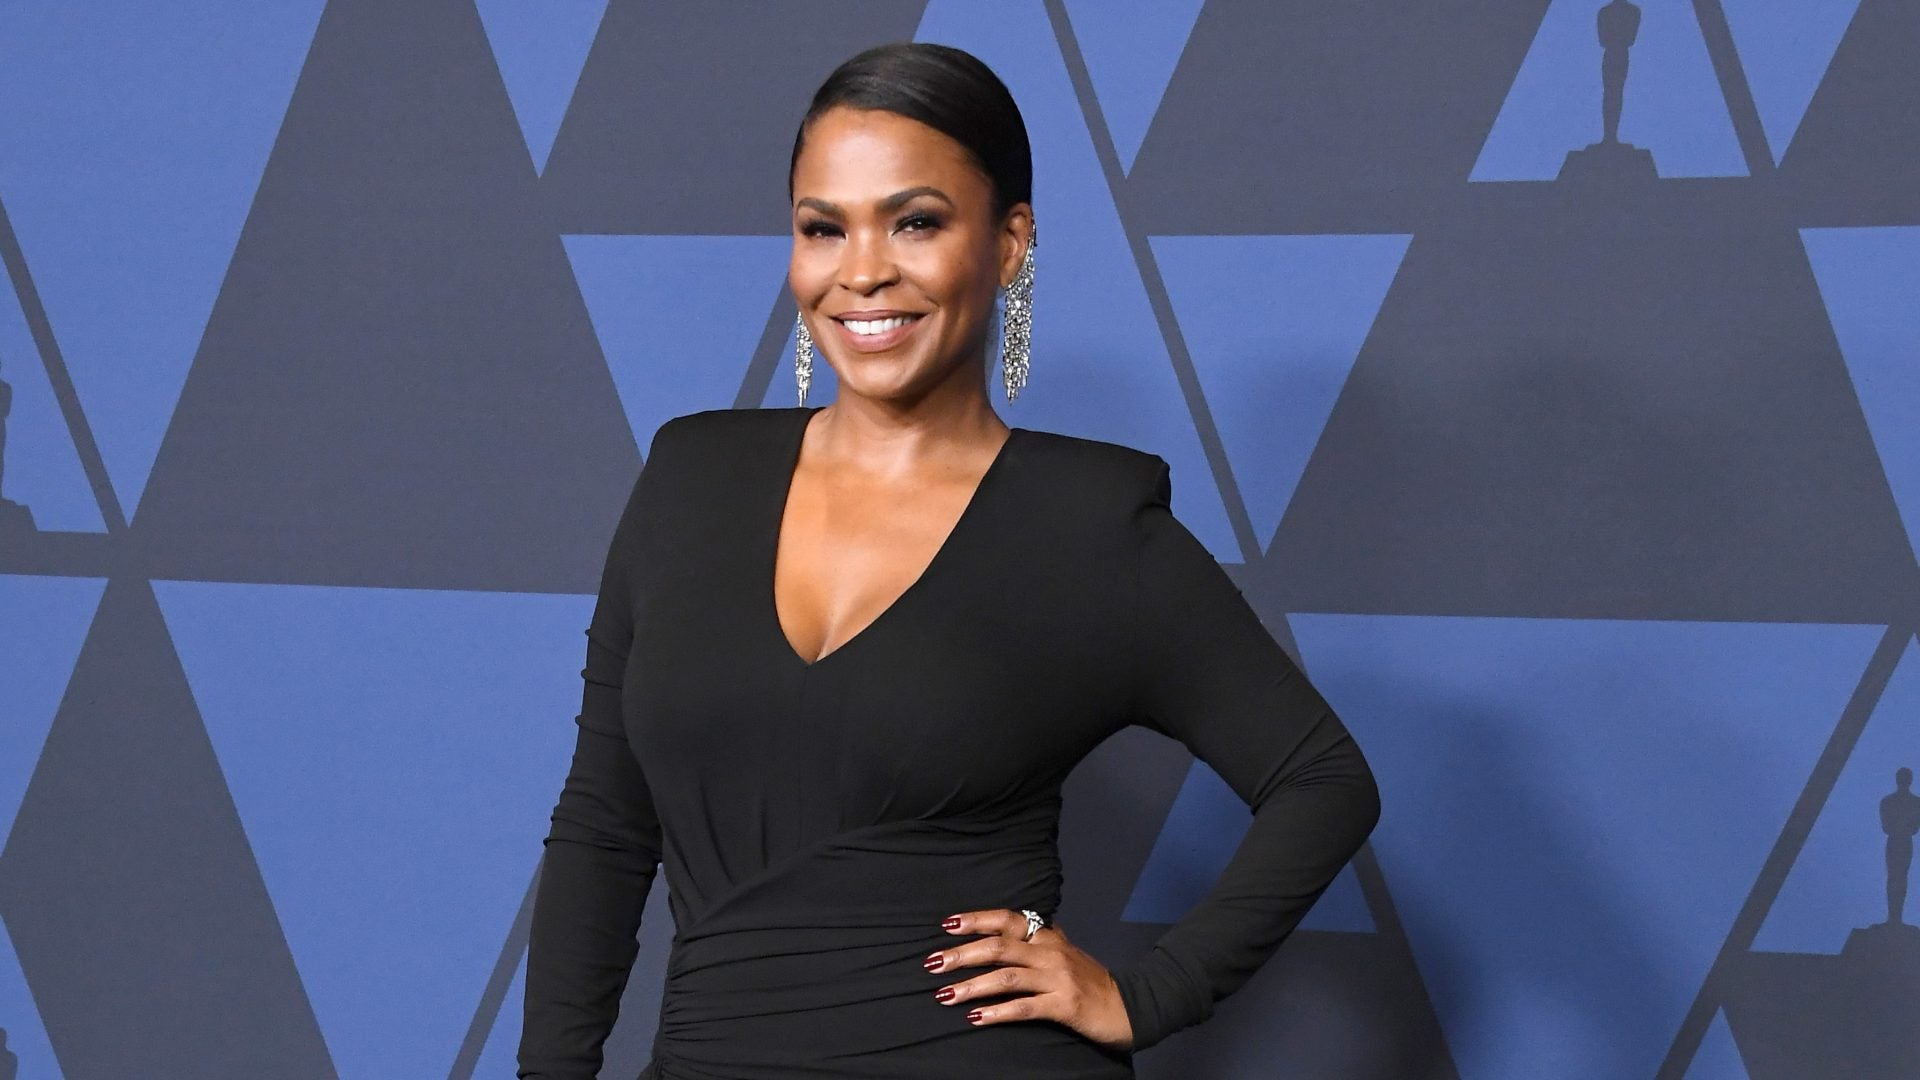 Nia Long Reveals The Wellness Secret To Looking Youthful